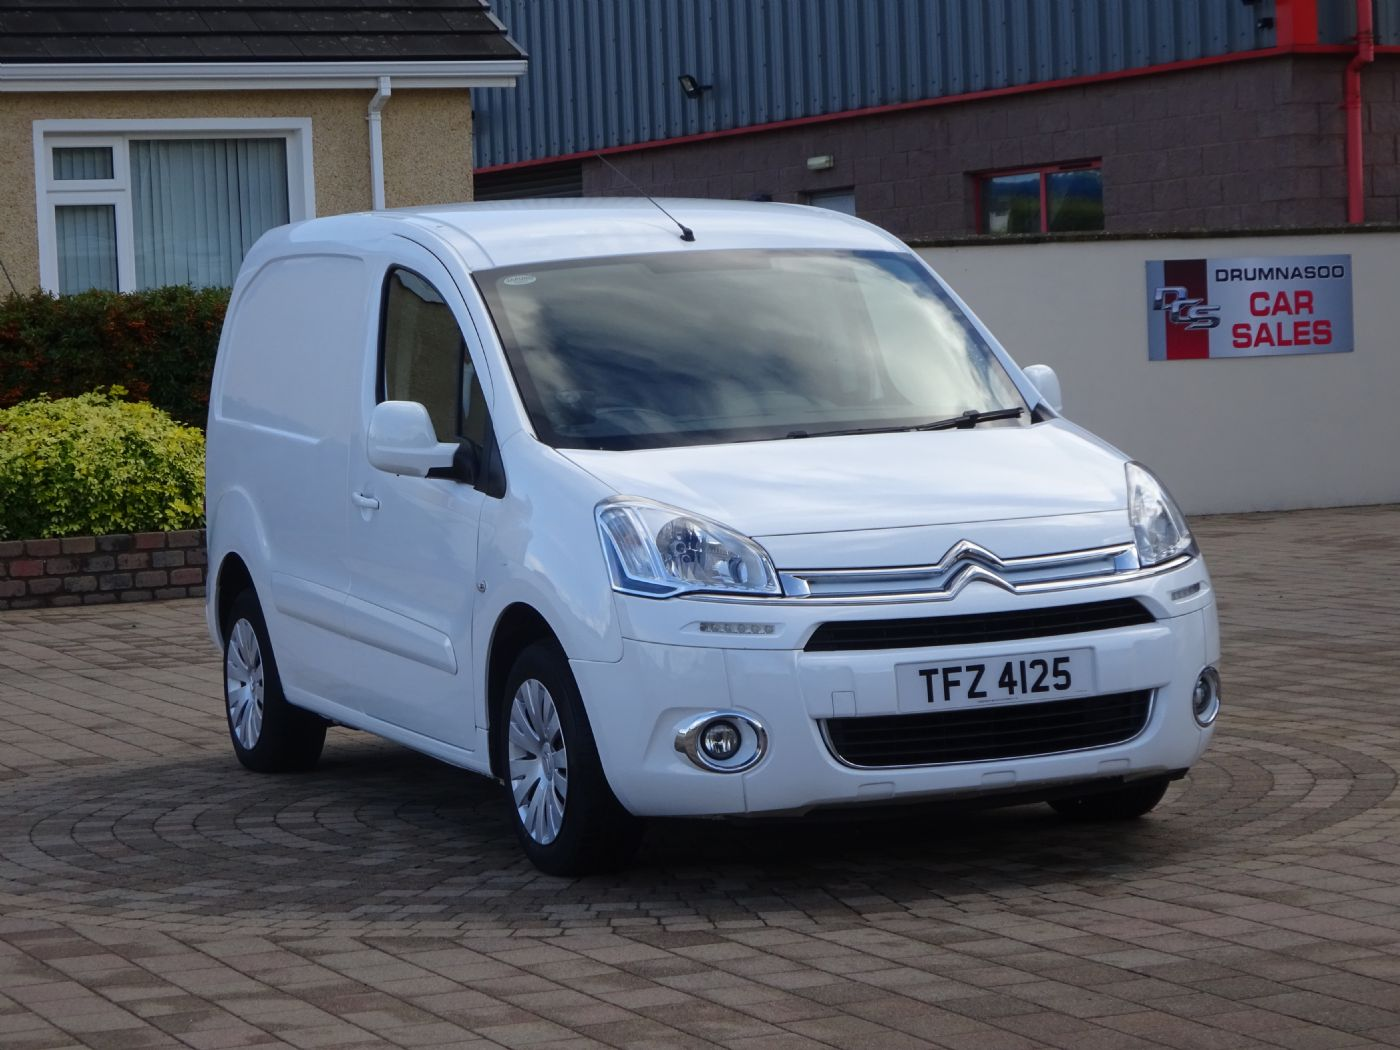 Citroen Berlingo 625 Enterprise 1.6 HDI, Sat nav, 3 Front Seats